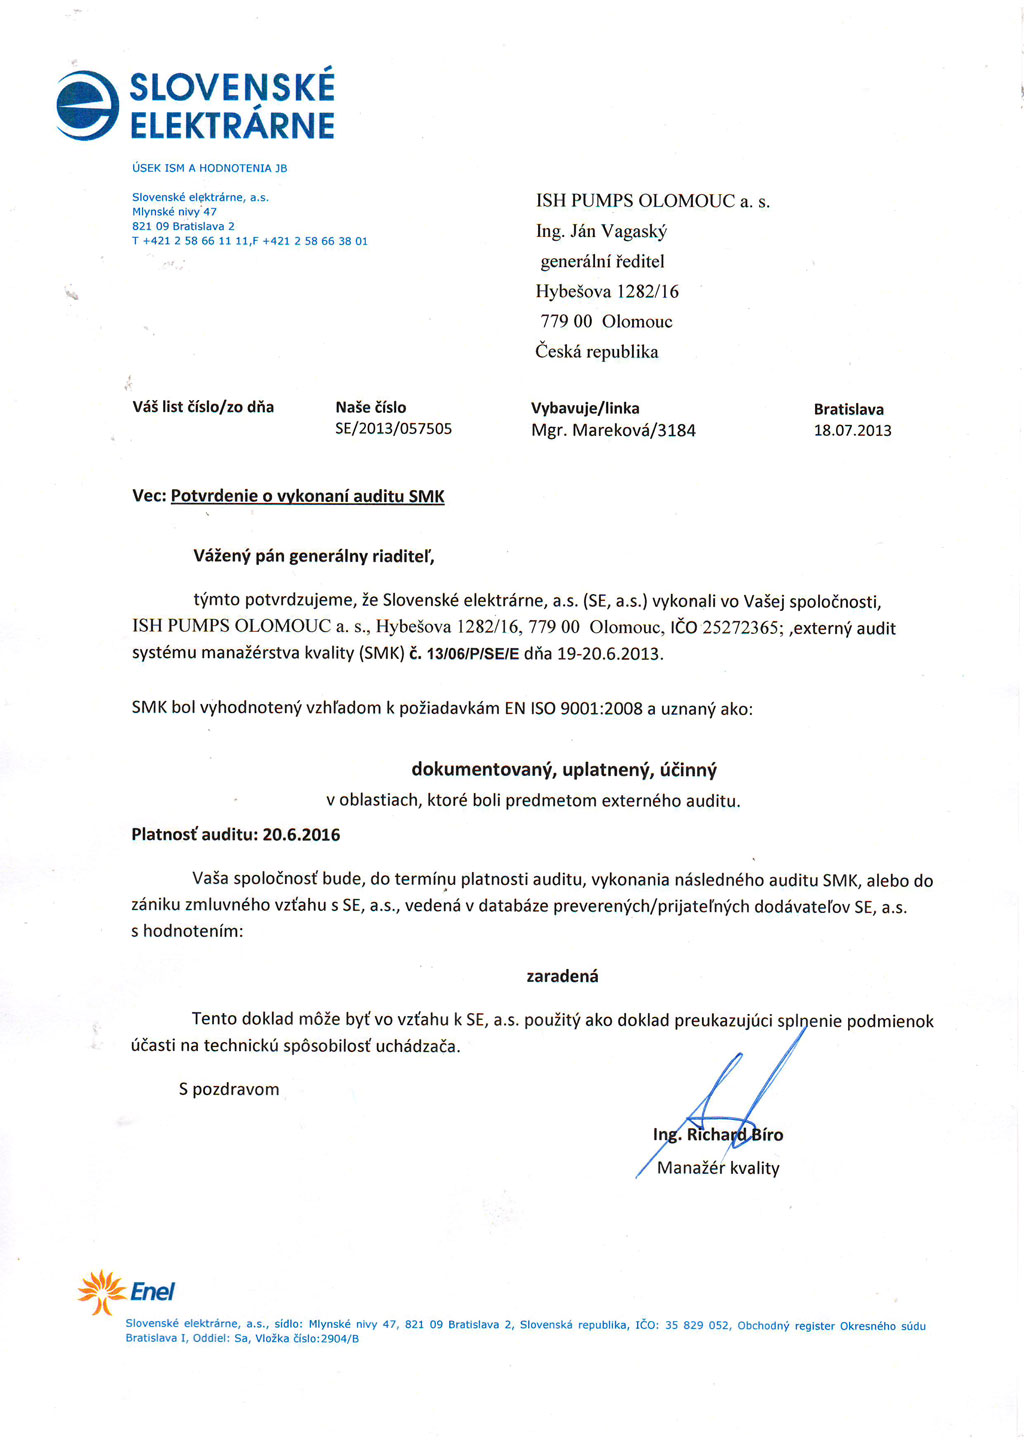 Certification About The Company Ish Pumps Olomouc A S